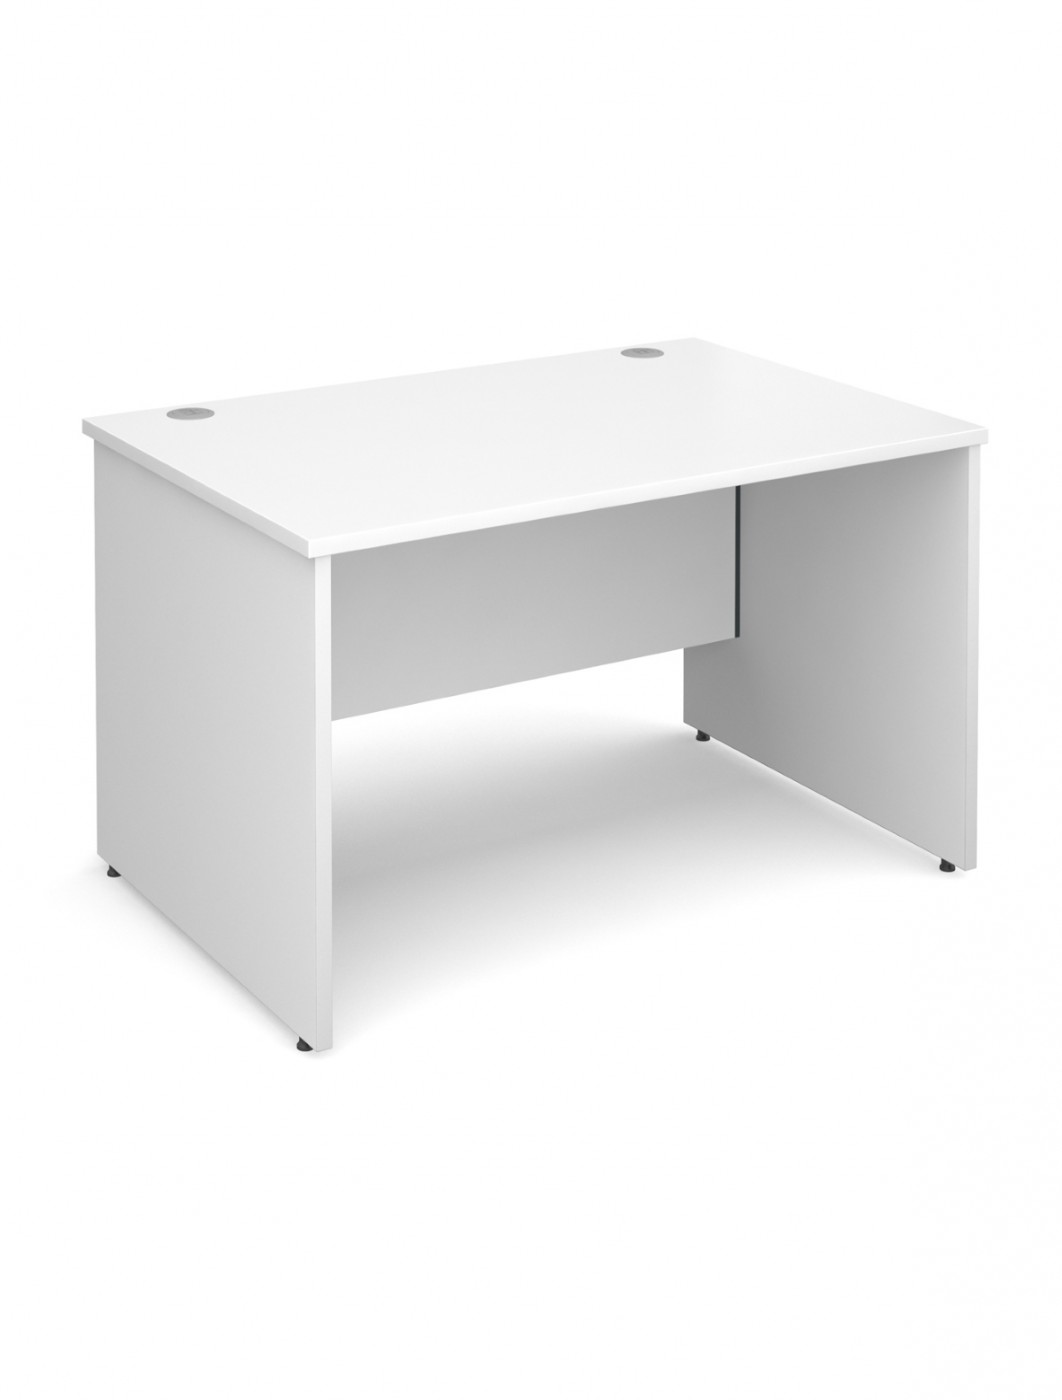 Outstanding White Office Desk 1200X800Mm Maestro 25 Panel Desk Mw12Wh Dams Home Interior And Landscaping Pimpapssignezvosmurscom